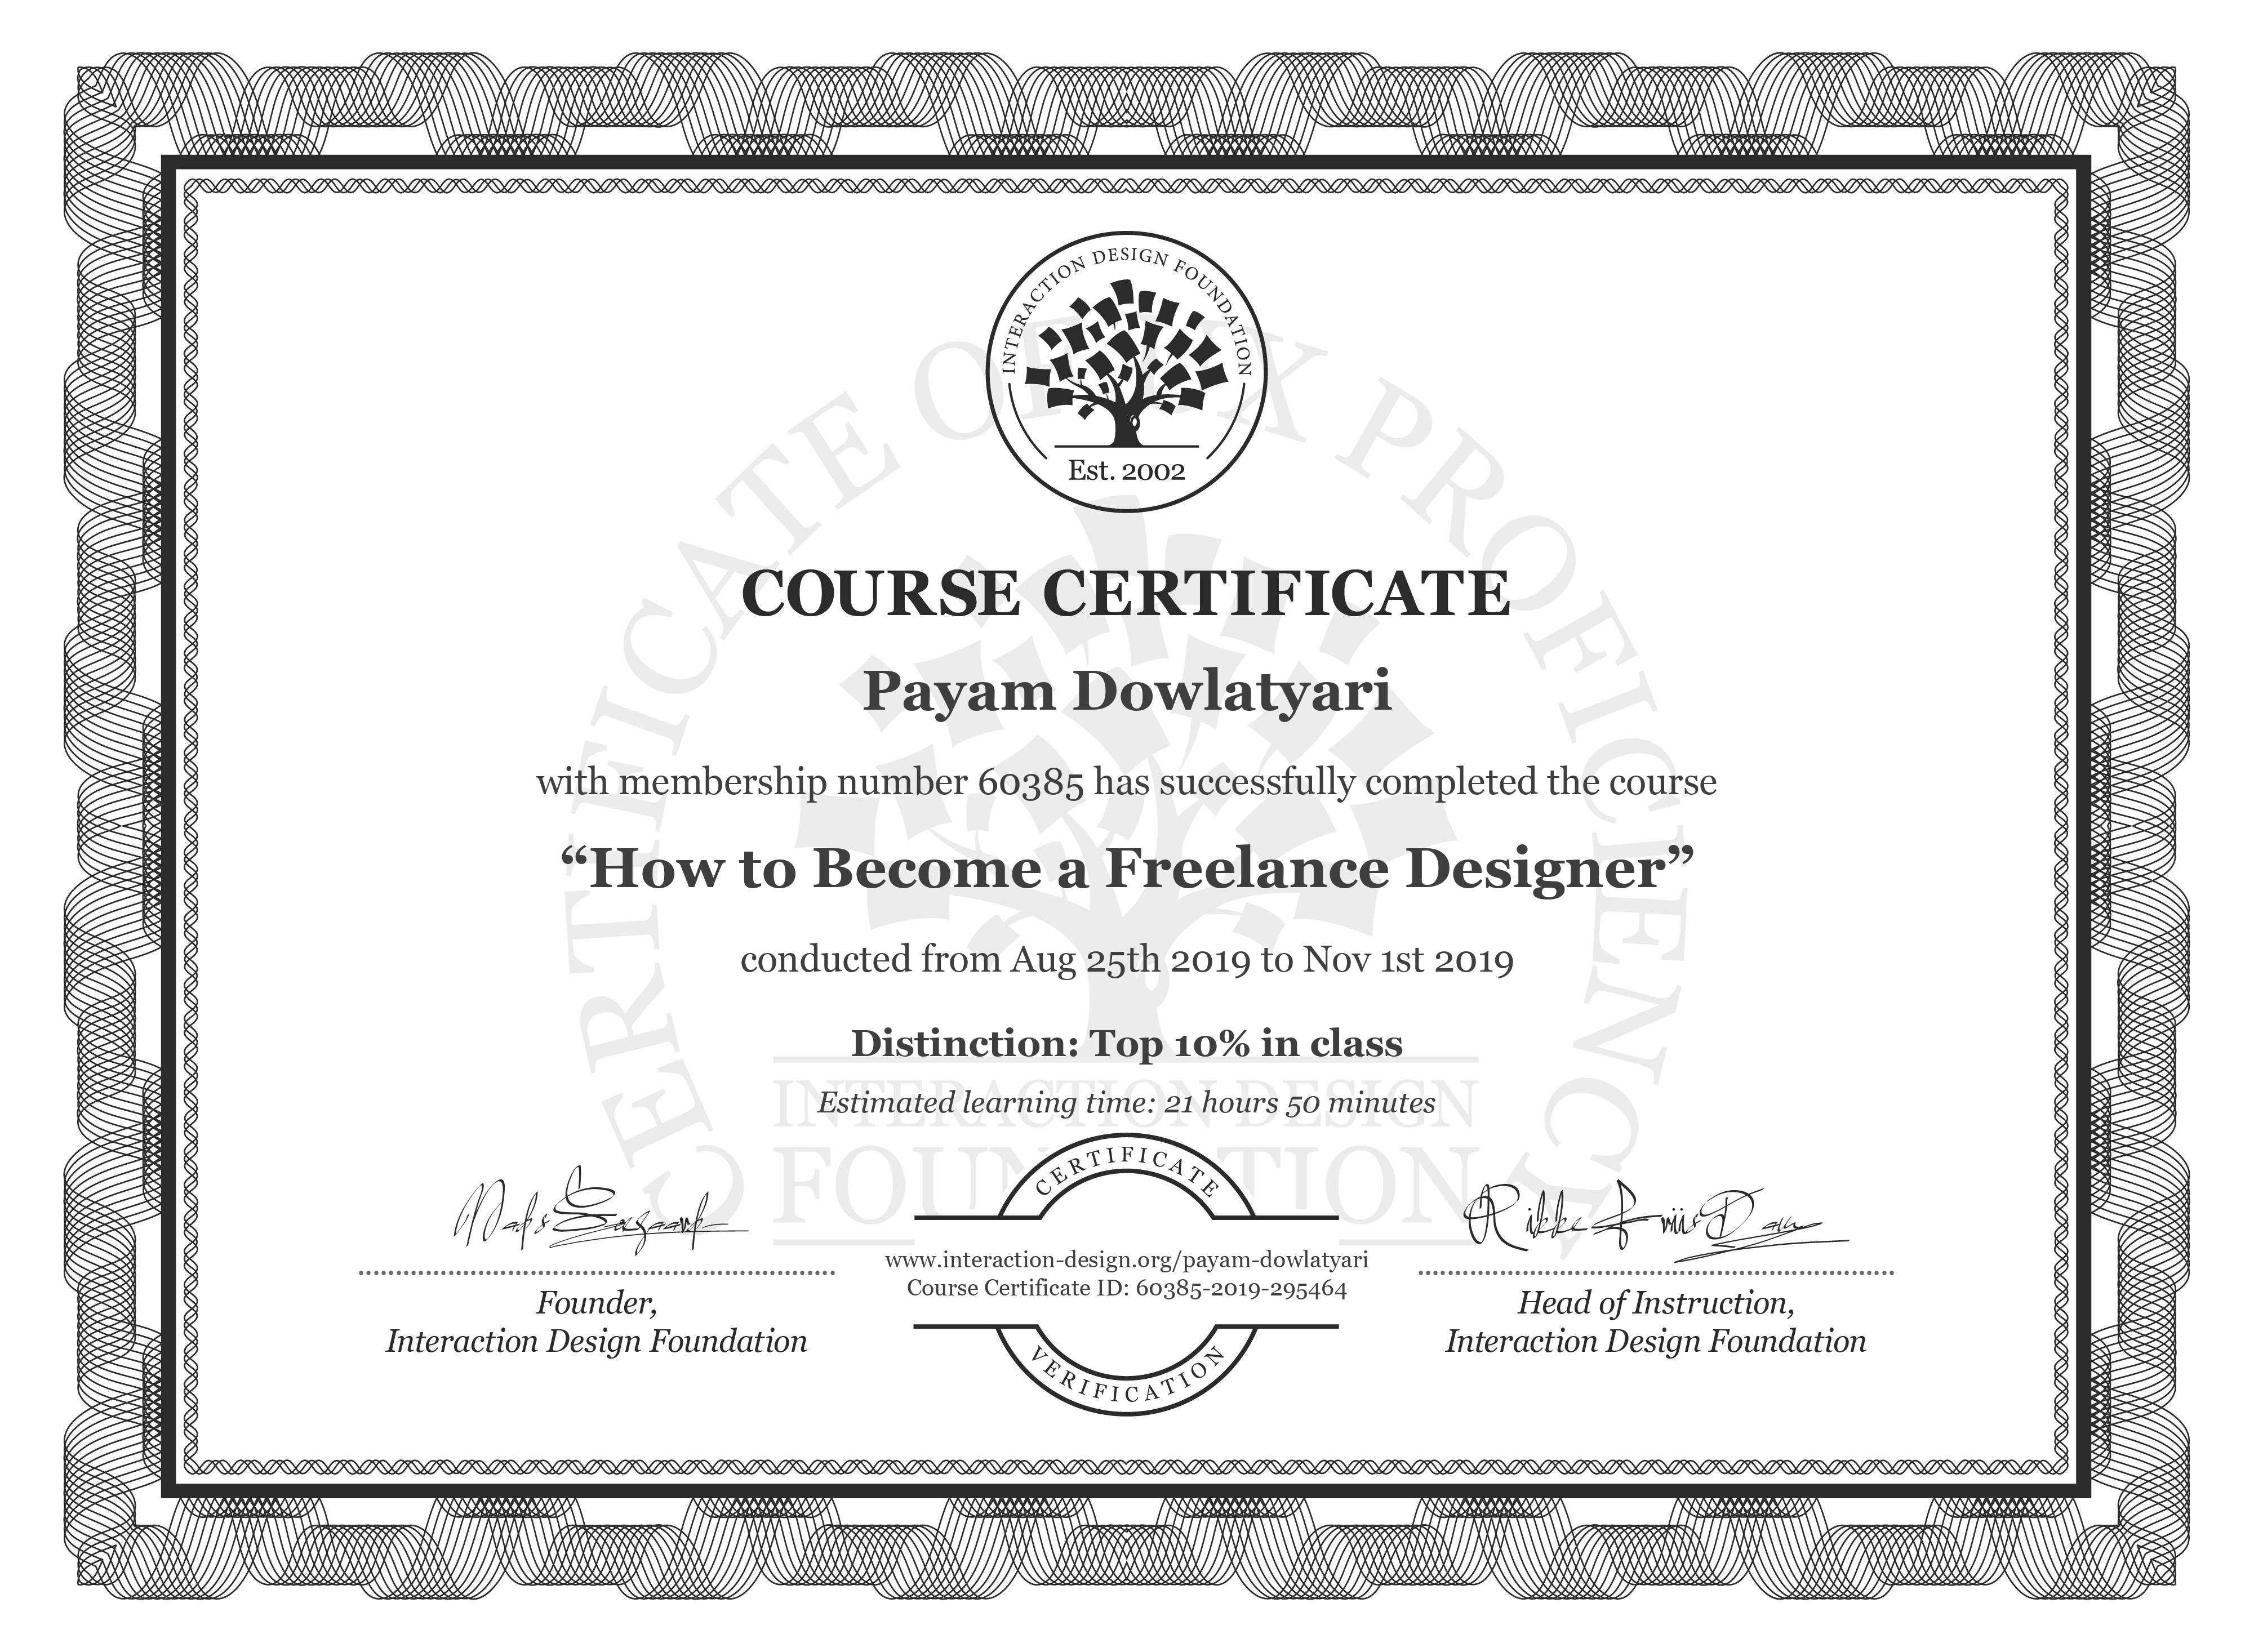 Payam Dowlatyari: Course Certificate - How to Become a Freelance Designer